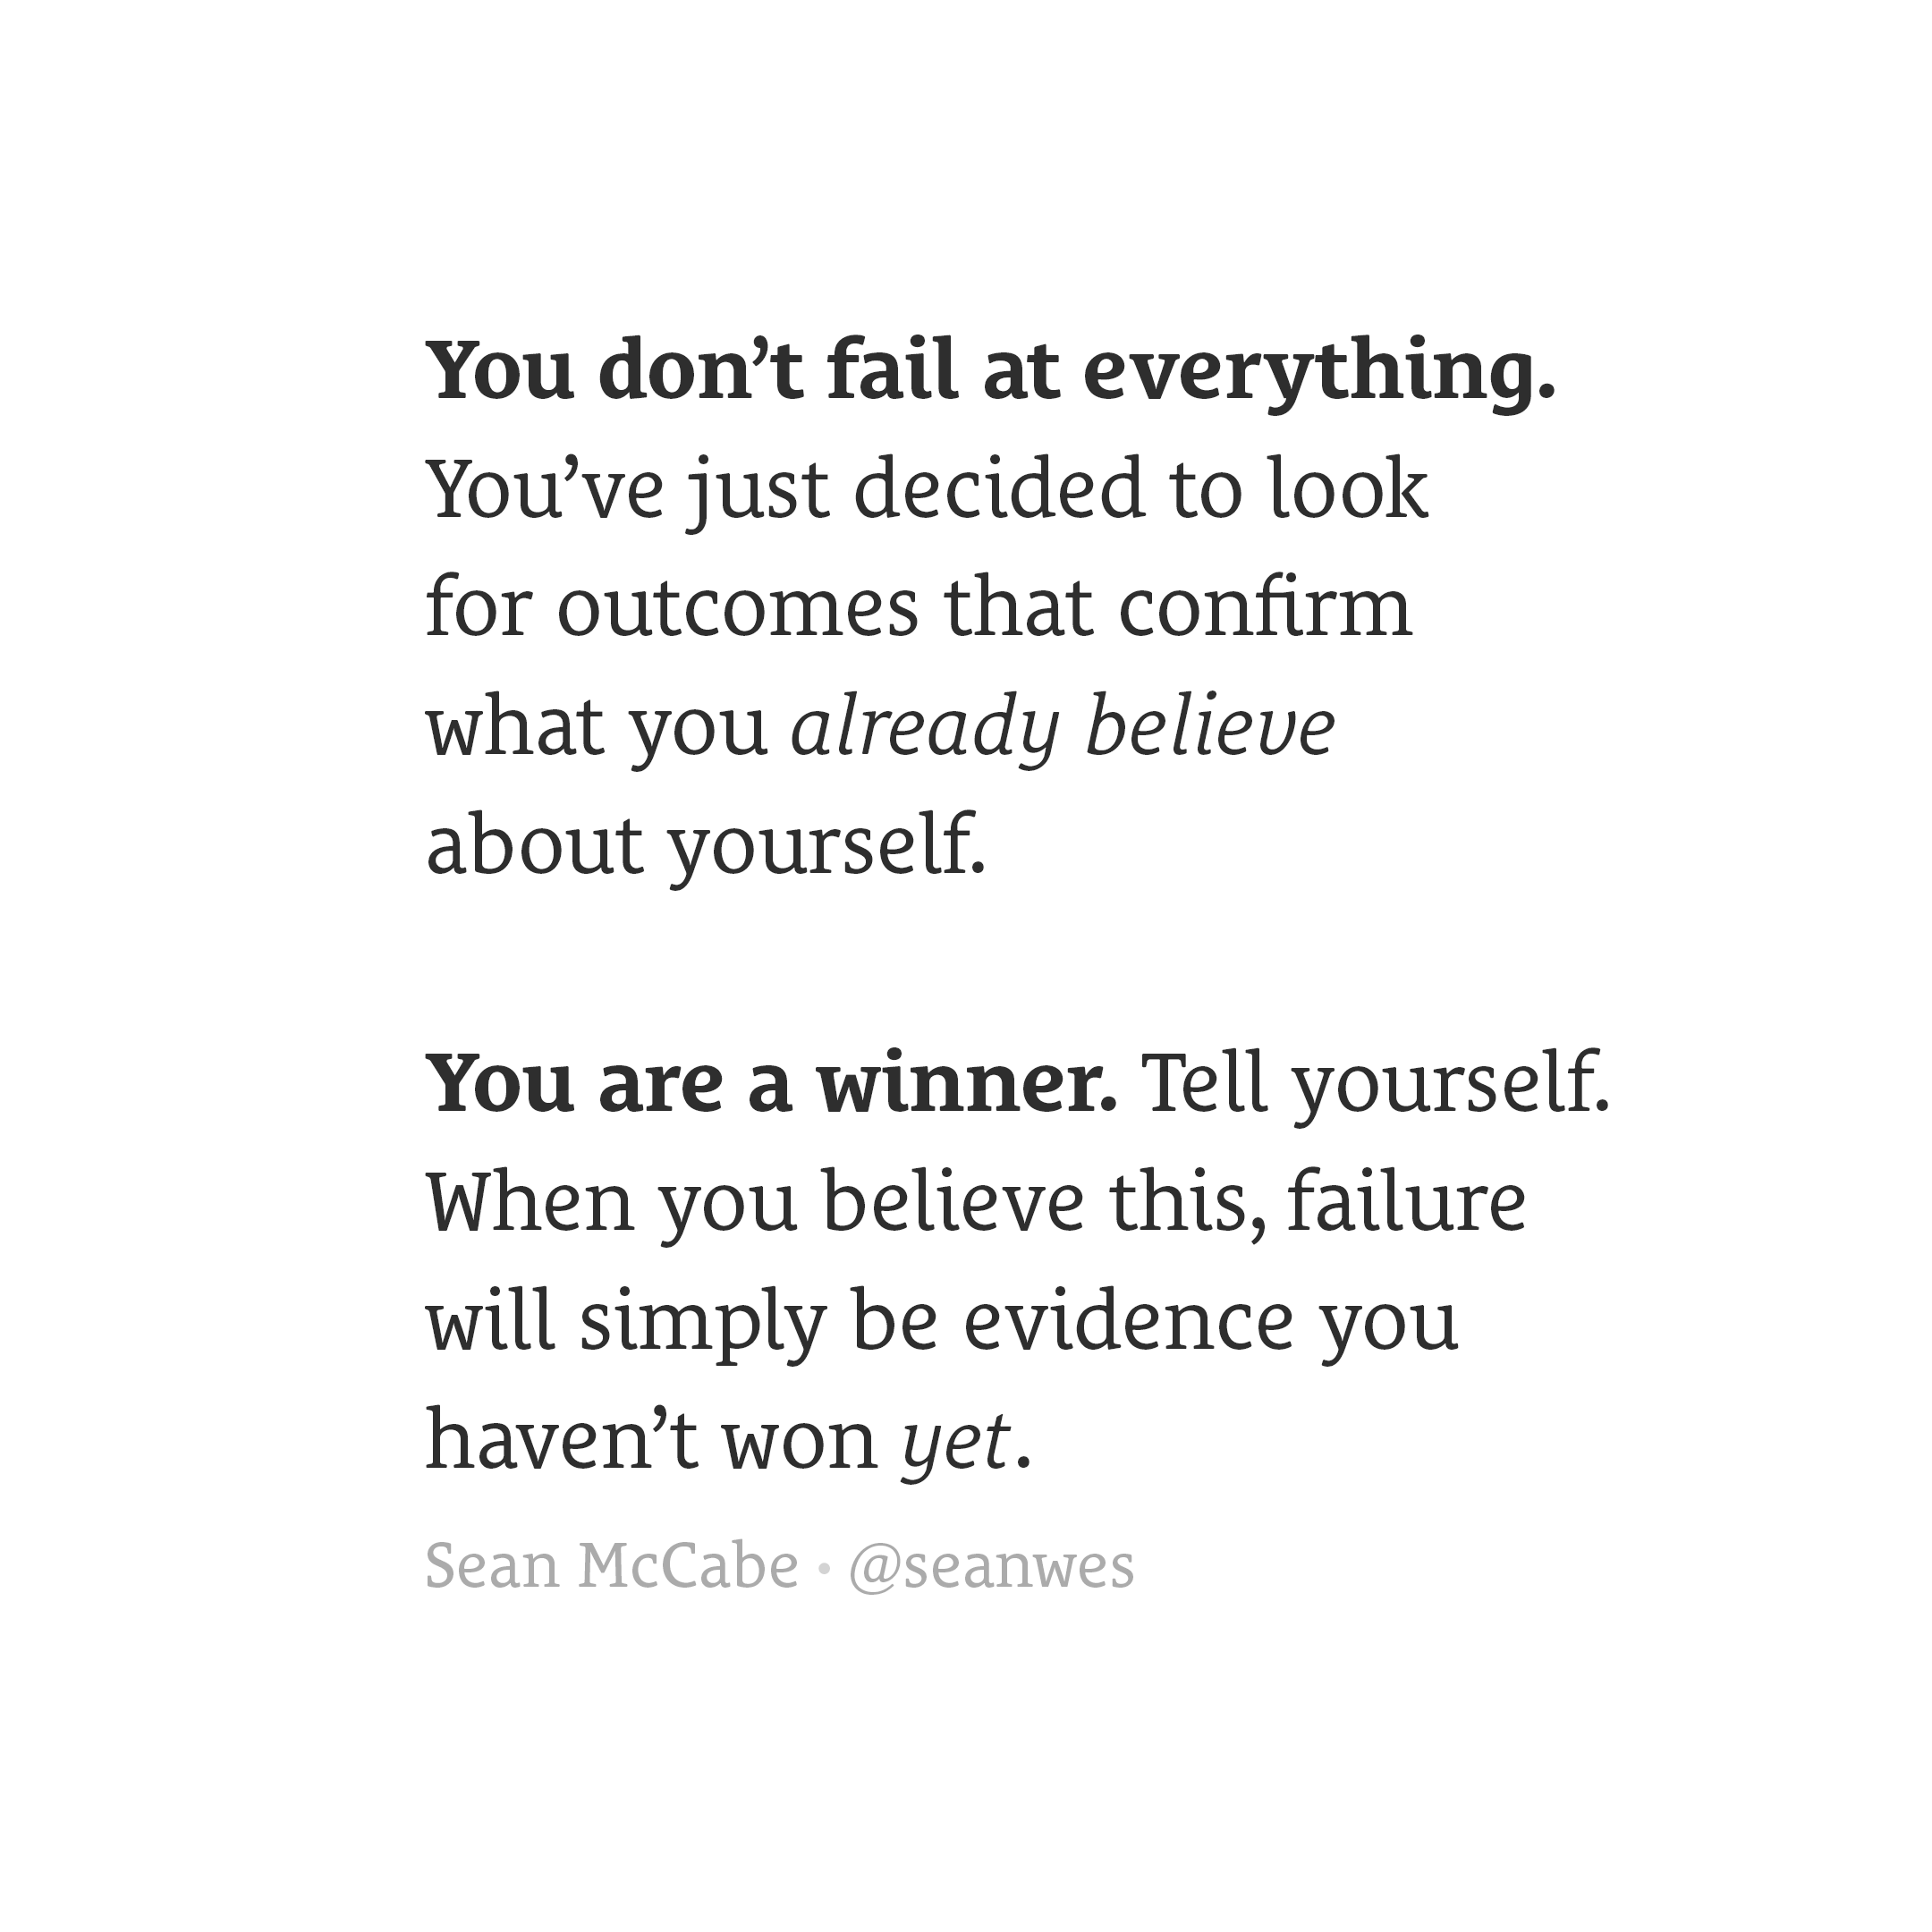 You are not a failure.